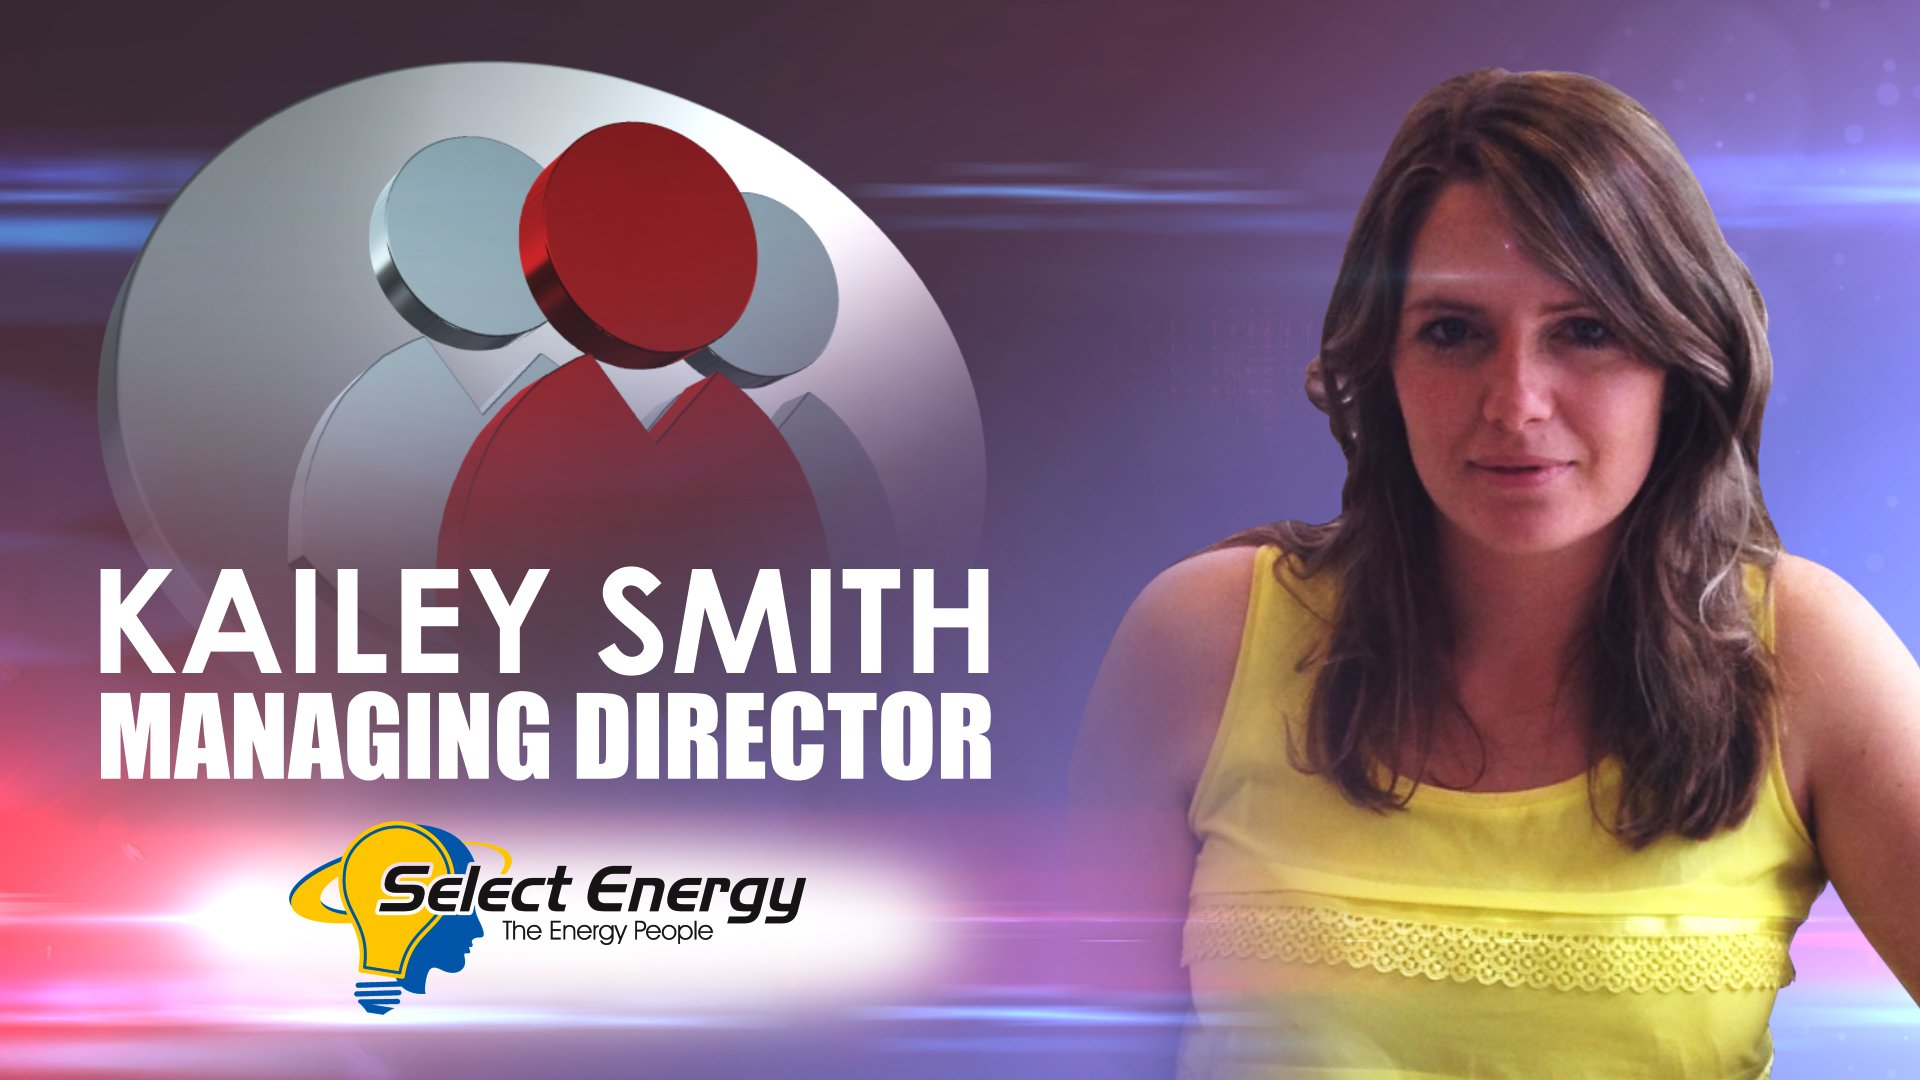 SPEAKER IMAGE - KAILEY SMITH